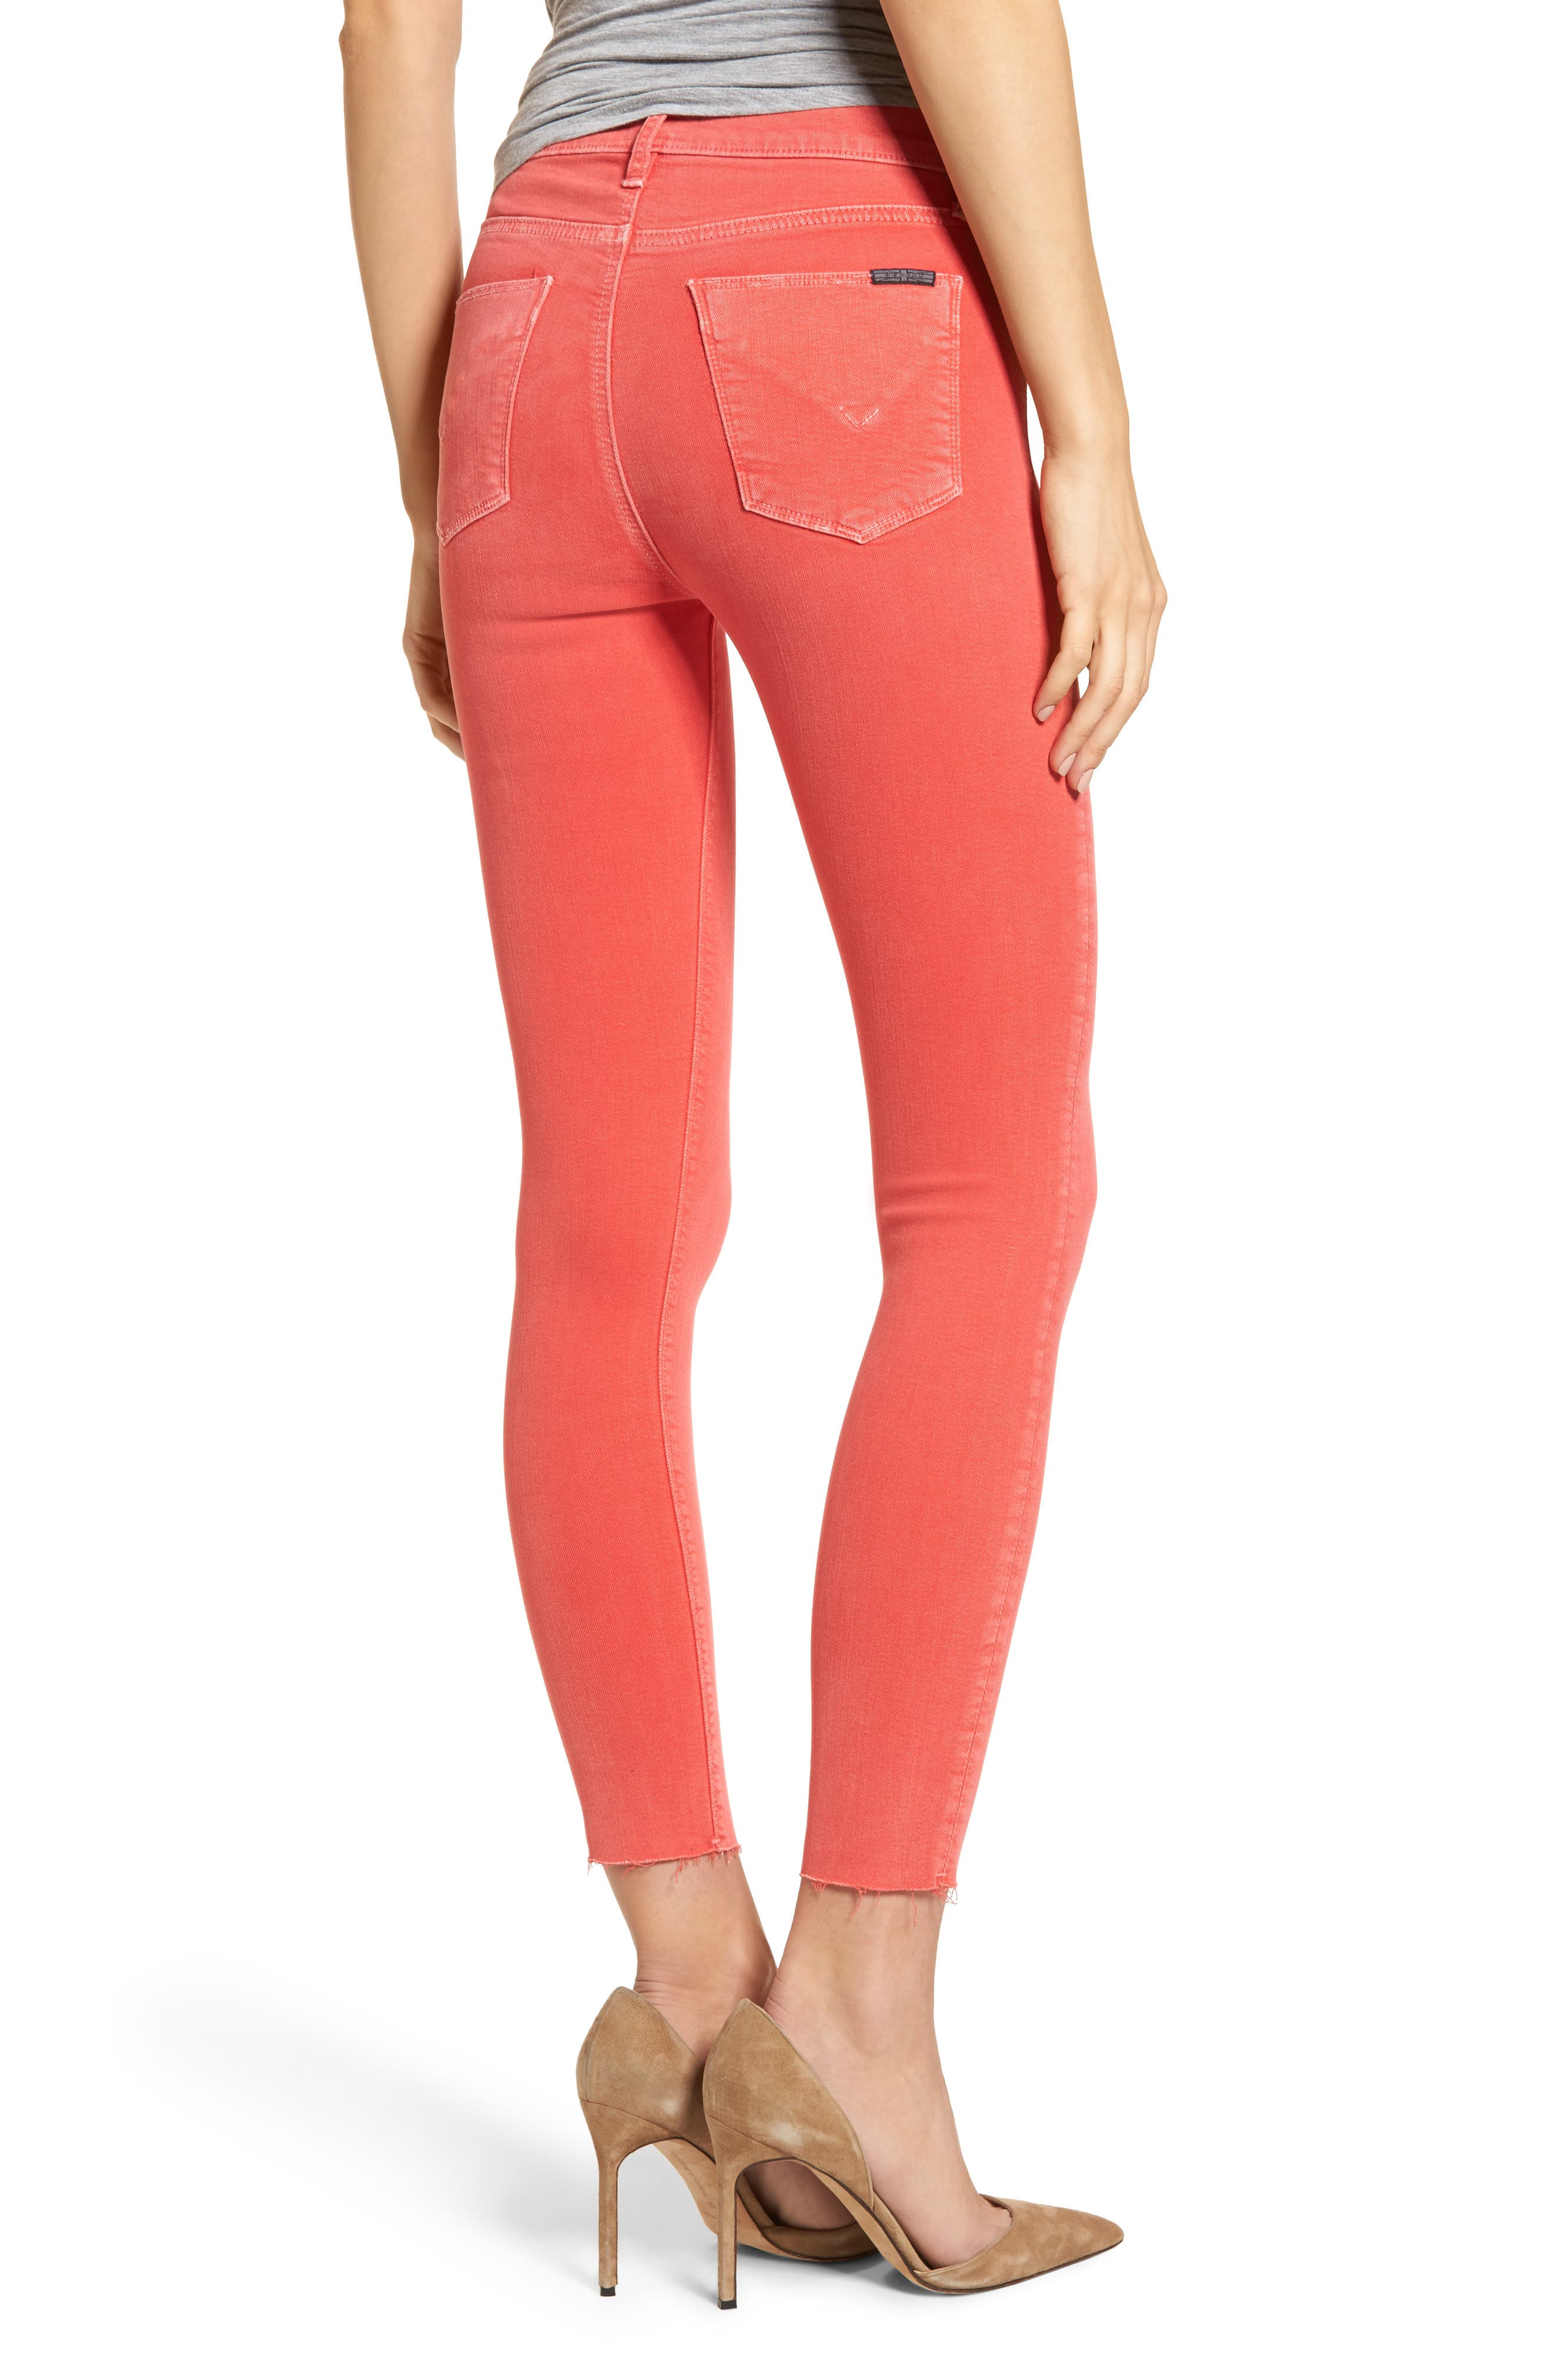 HUDSON JEANS,                             Tally Crop Skinny Jeans,                             Alternate thumbnail 2, color,                             640